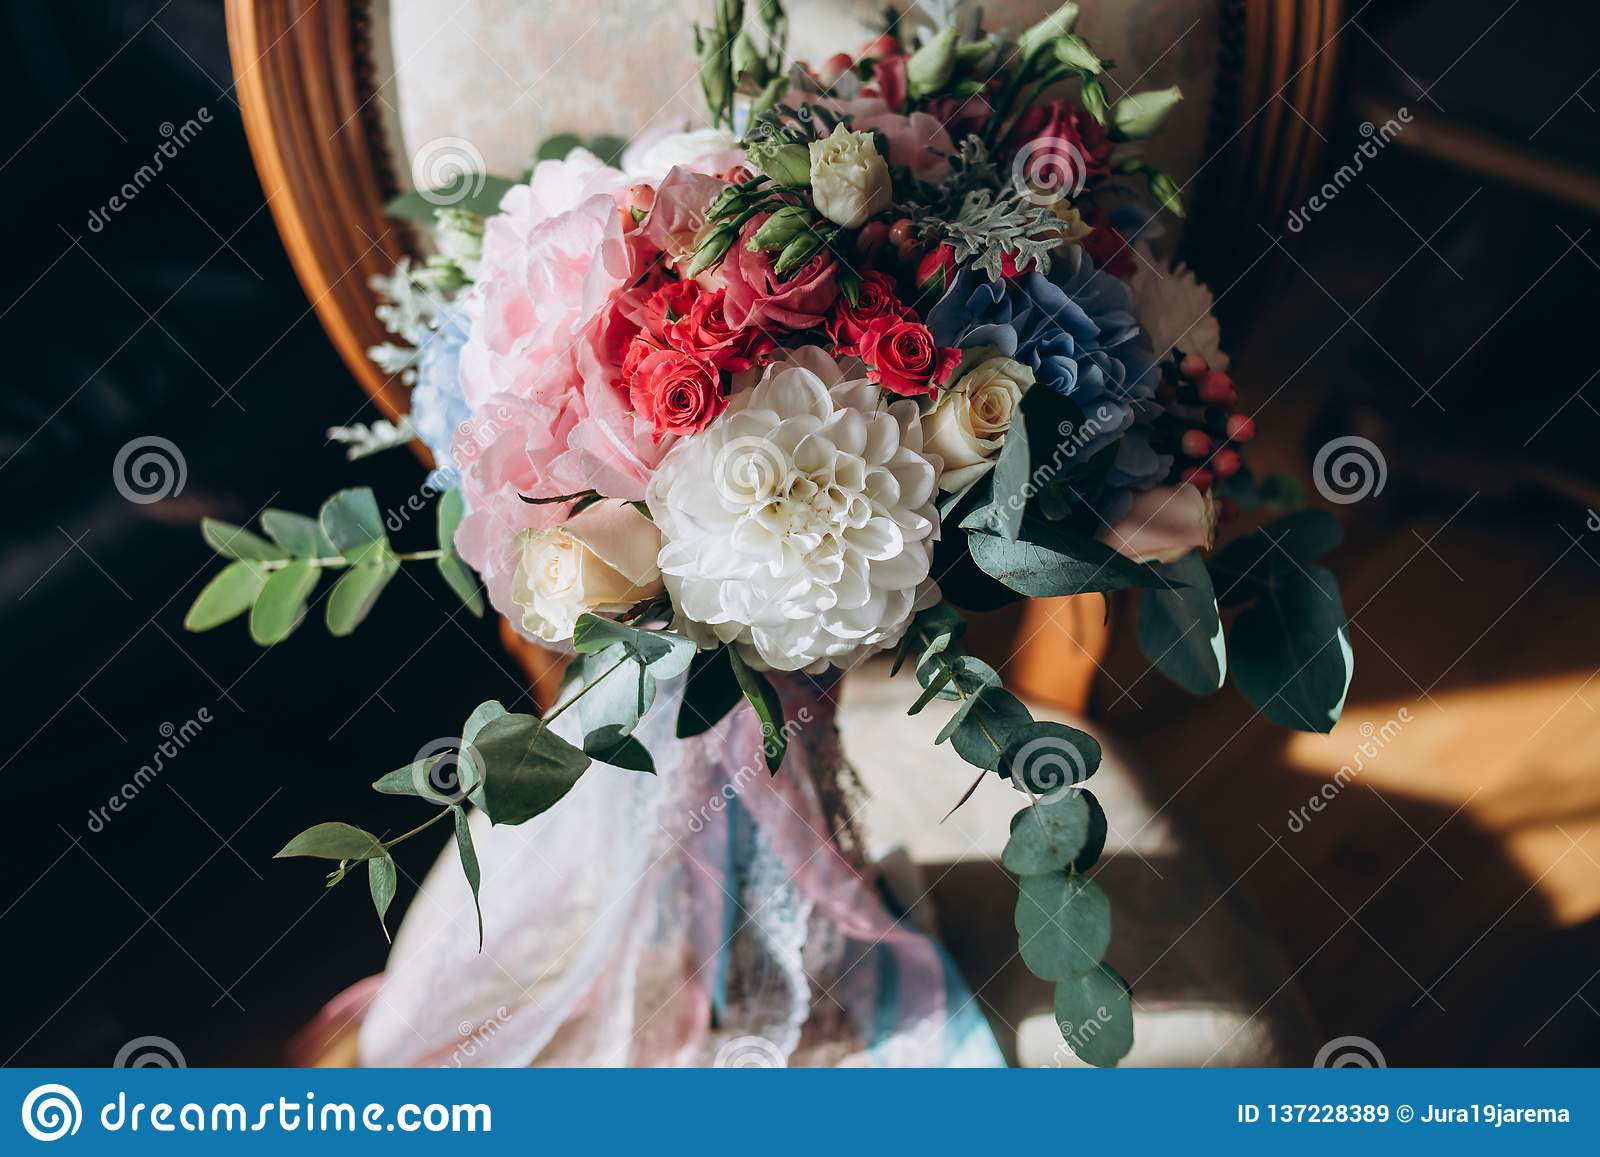 A Beautiful Wedding Bouquet From Blue Red White And Pink Flowers For The Bride Stock Image Image Of Decor Beauty 137228389